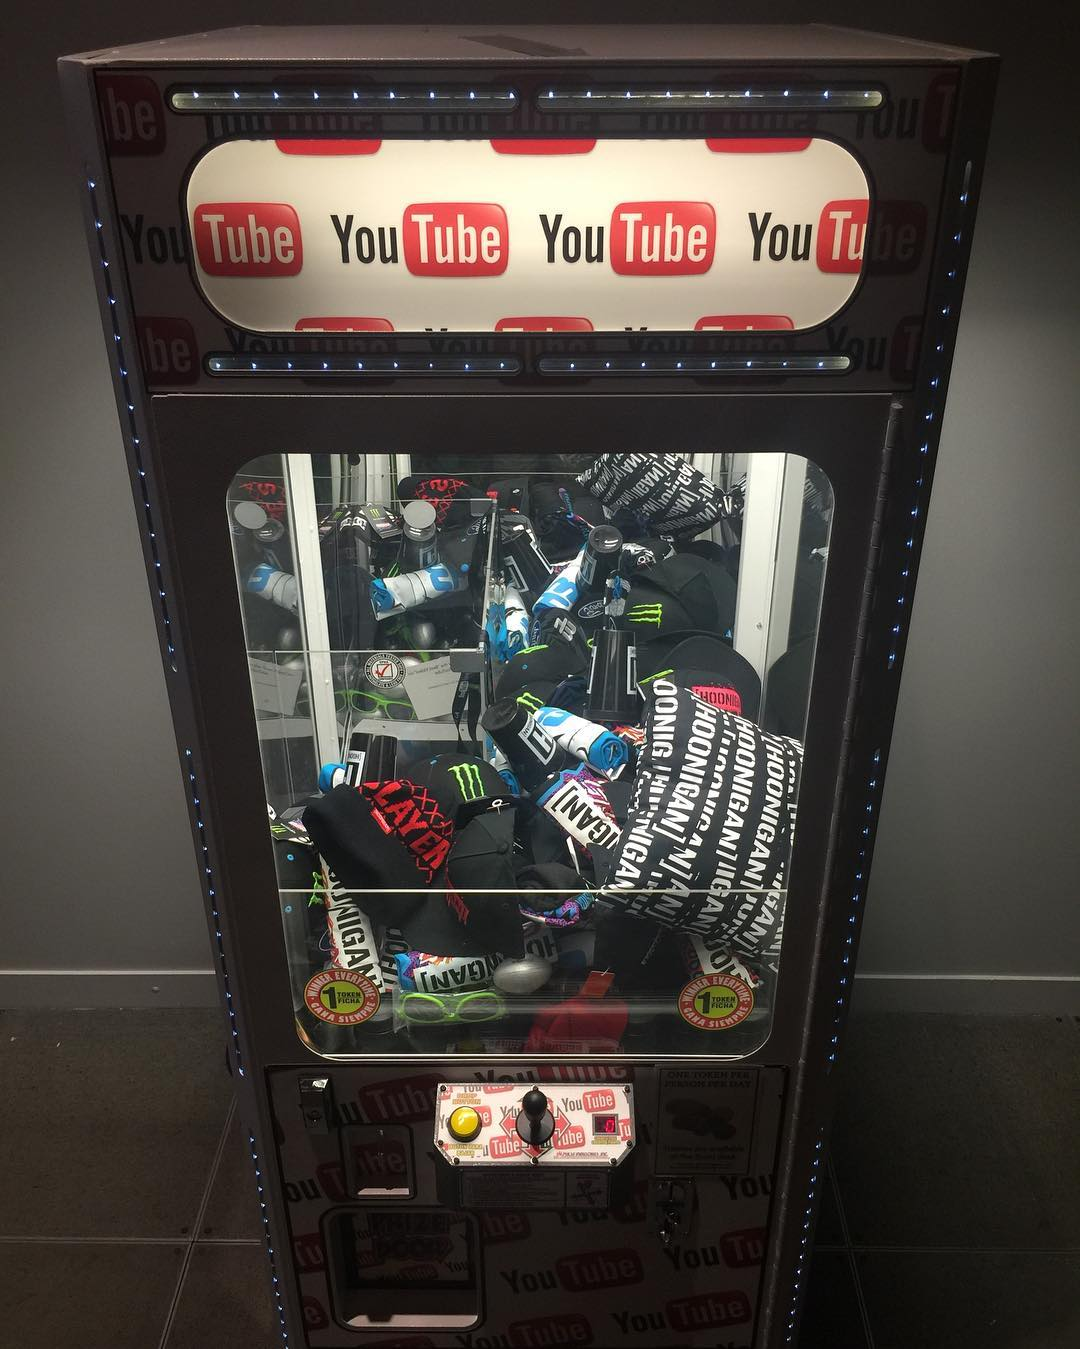 The #youtubespace in Los Angeles has the most rad claw game we've seen. Who agrees? #theclaw